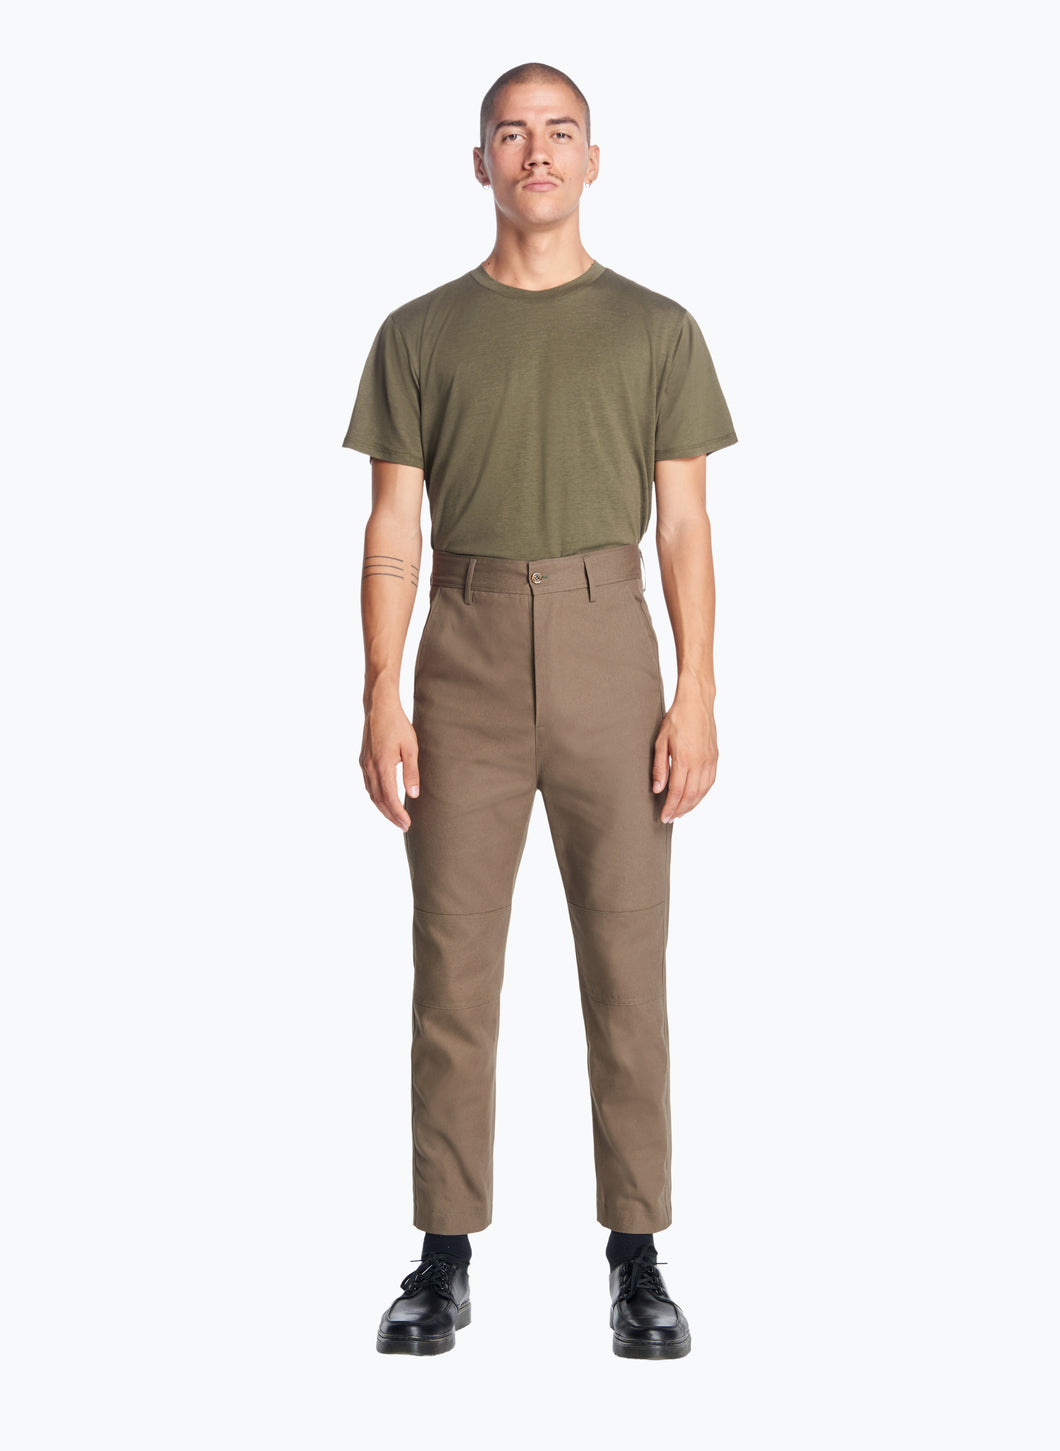 High-Waisted Pants with Reinforced Knees in Olive Canvas